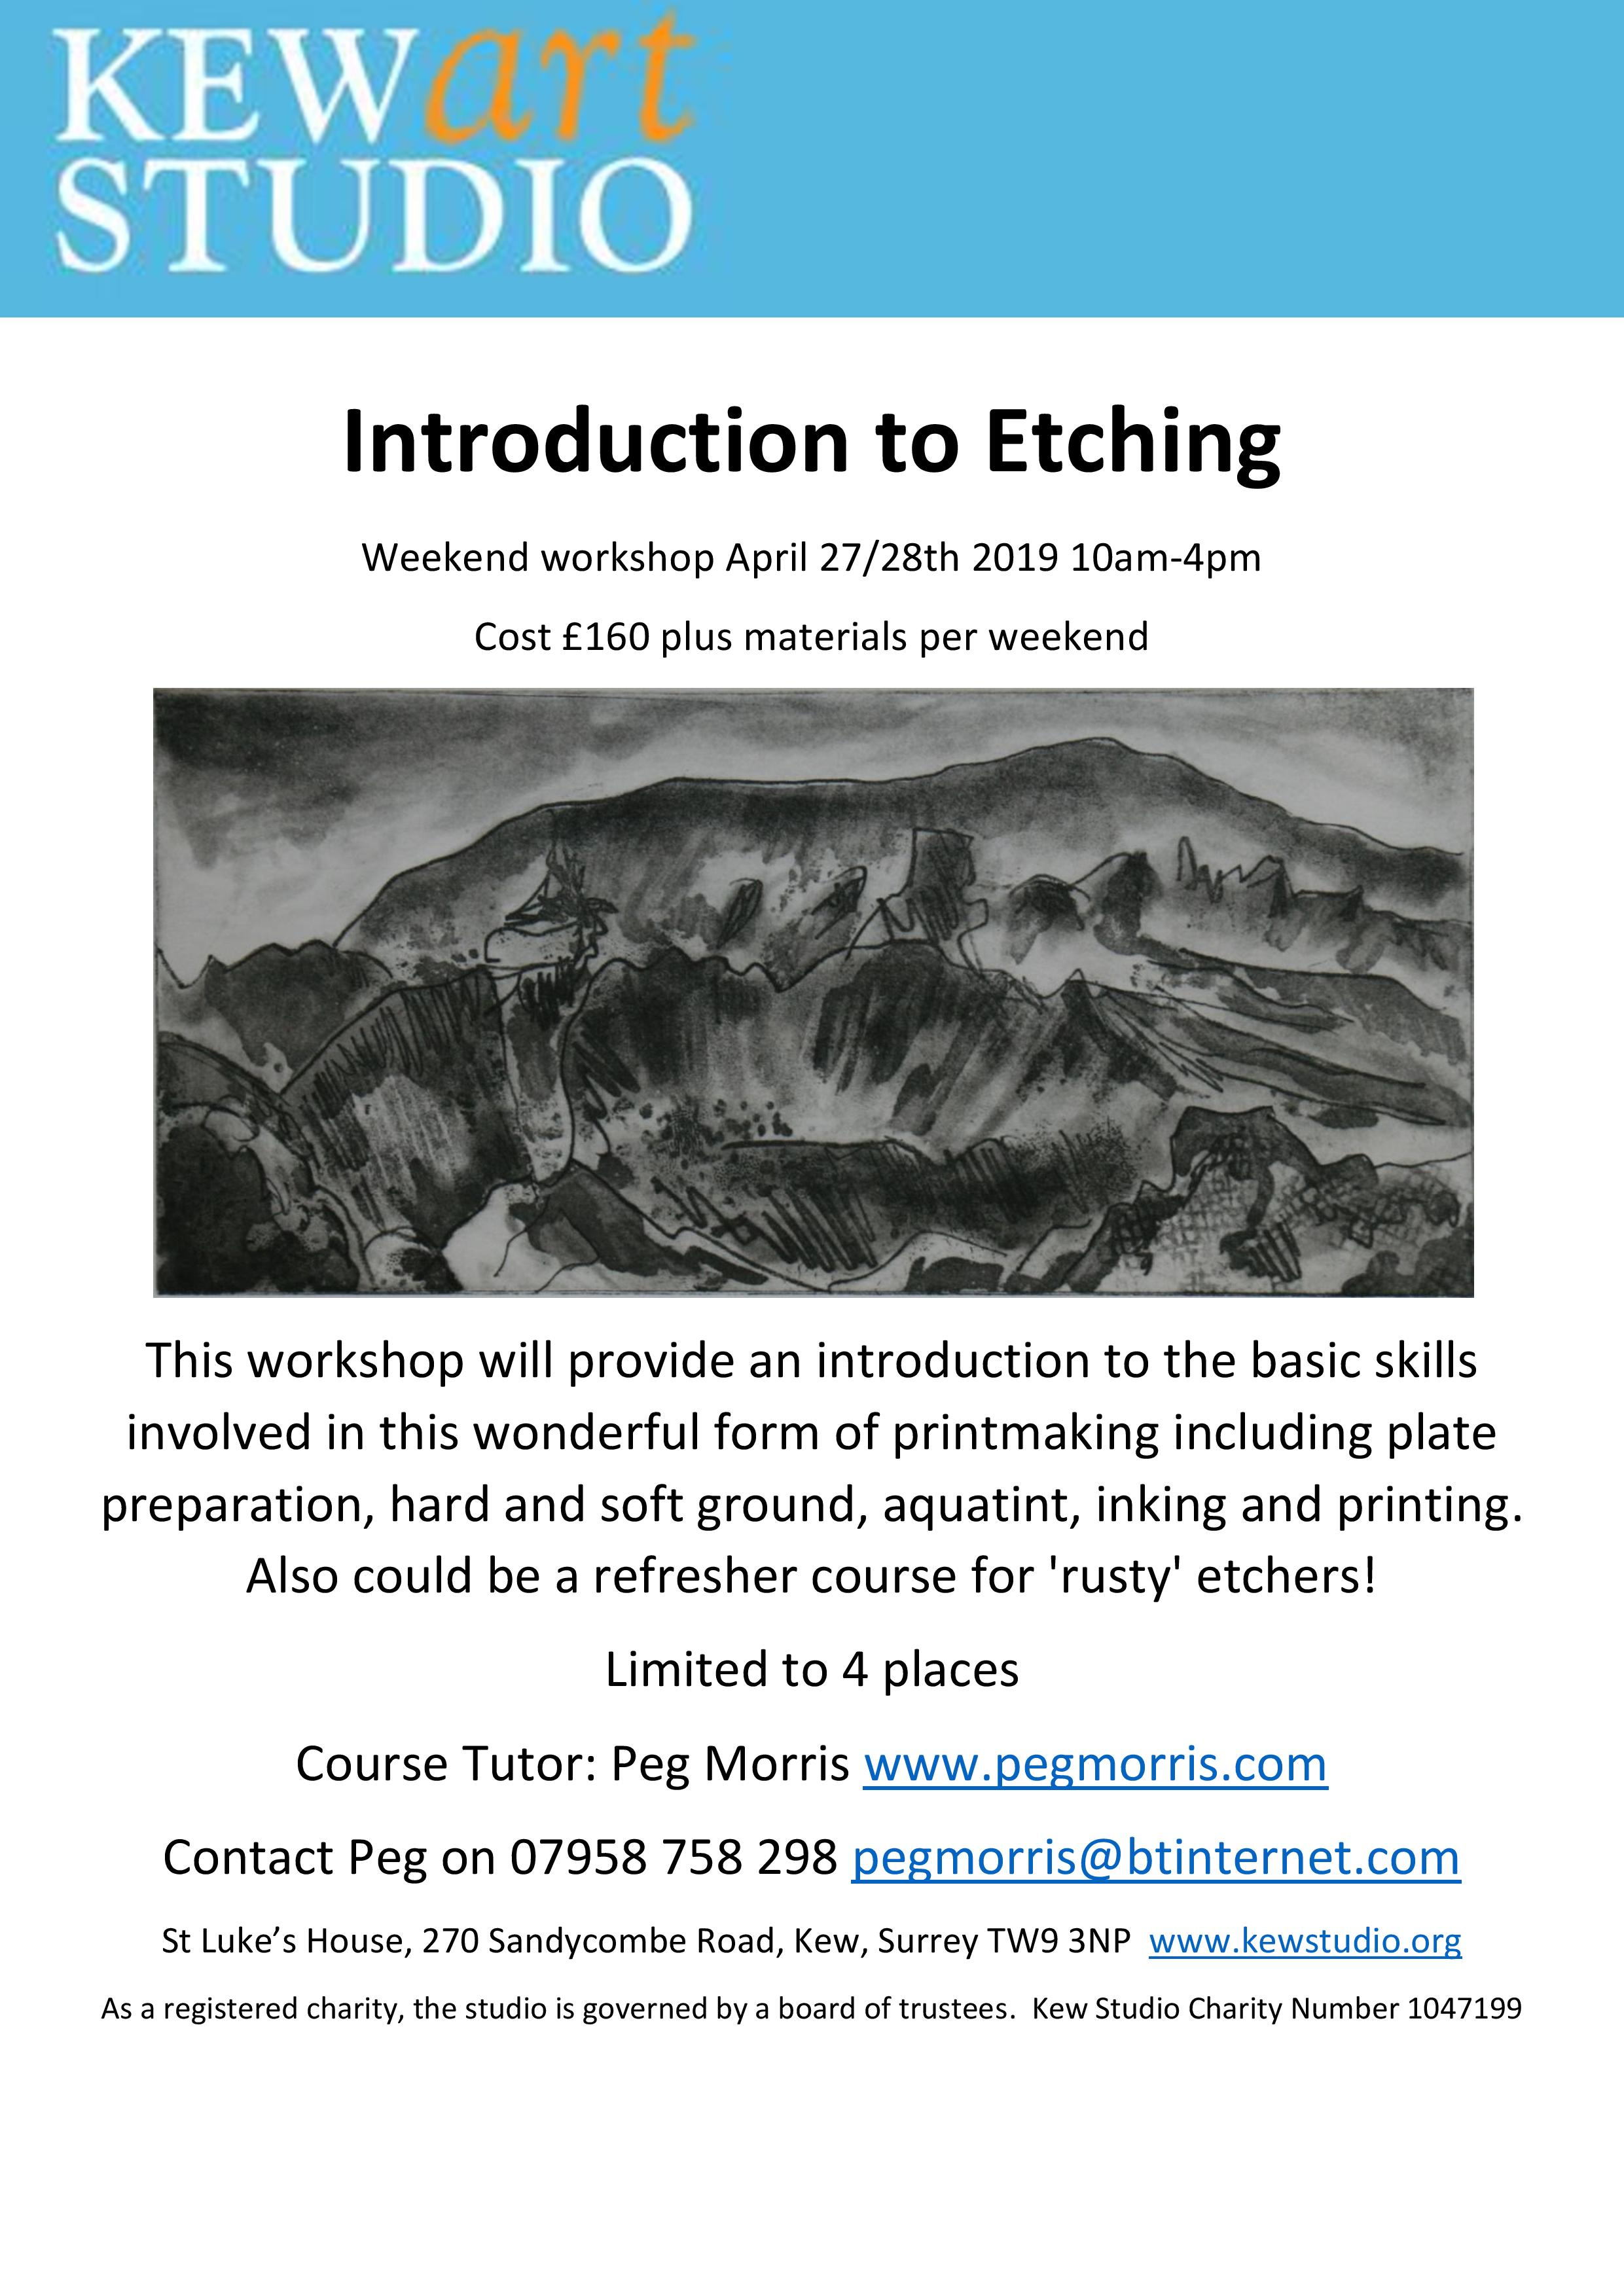 Introduction to Etching weekend April 2019-page-001